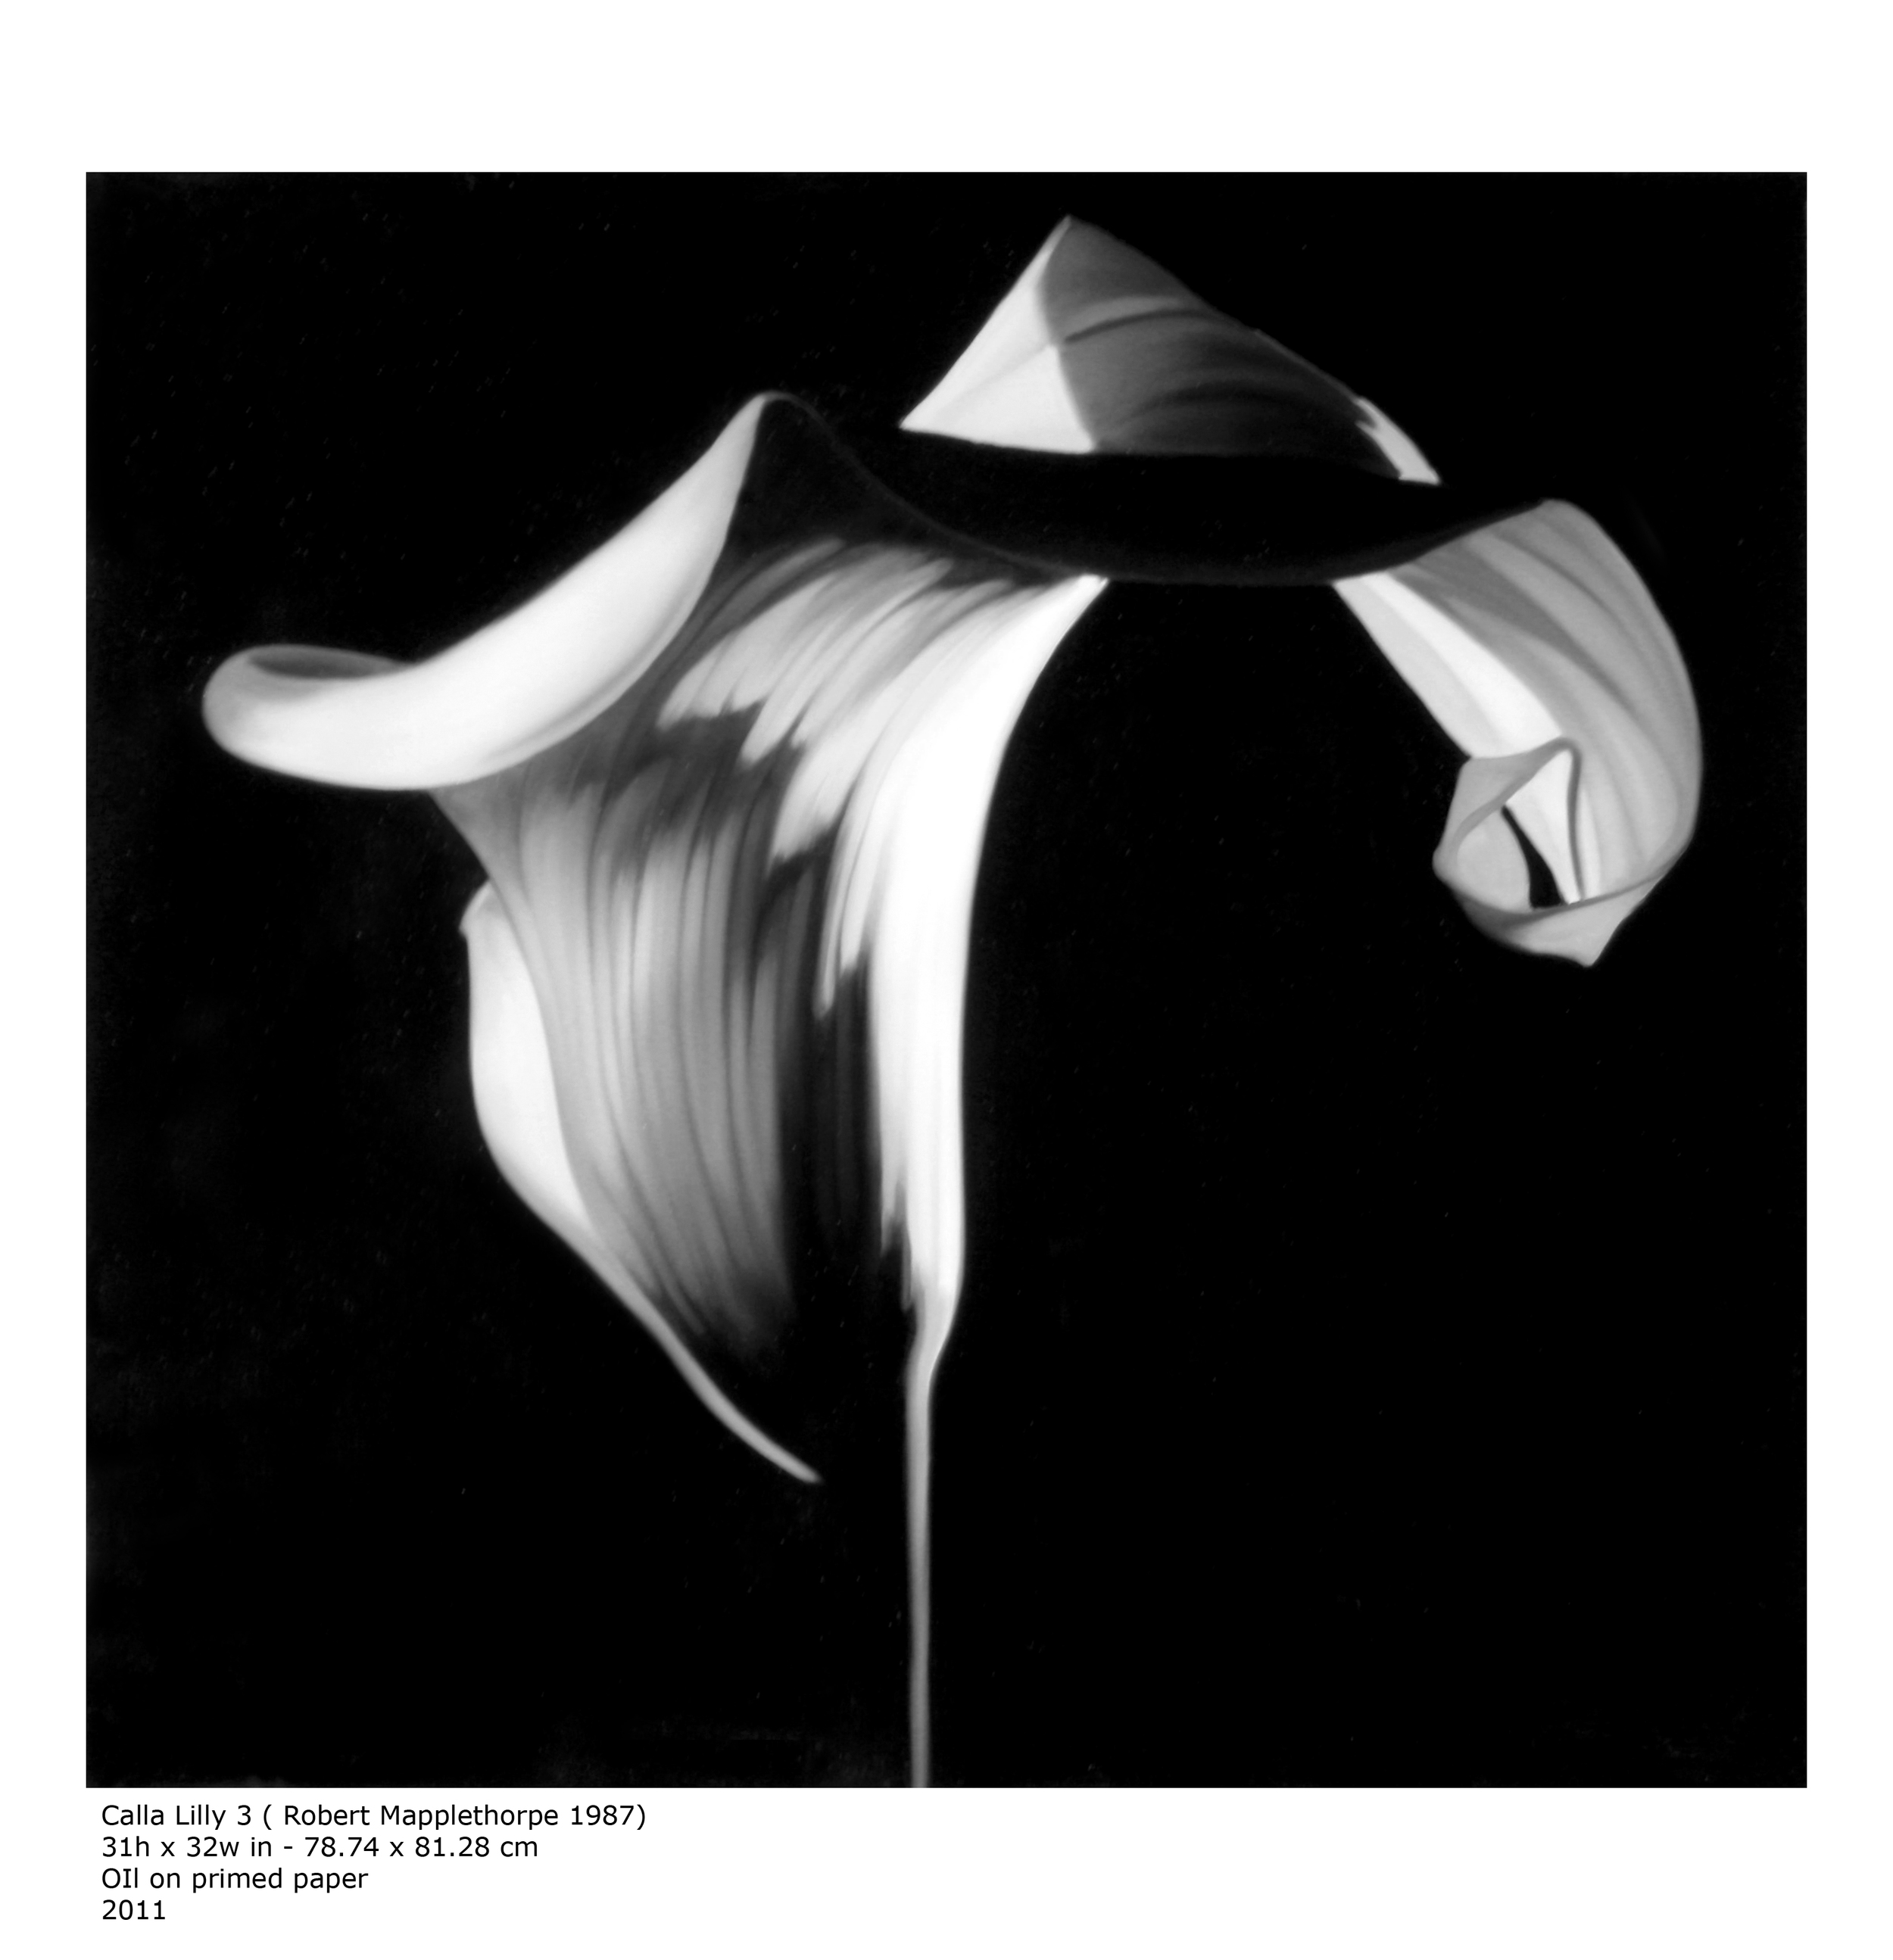 Calla Lilly 3 ( Robert Mapplethorpe 1987 )  Oil on Primed Paper - 37 x 31in - 2011